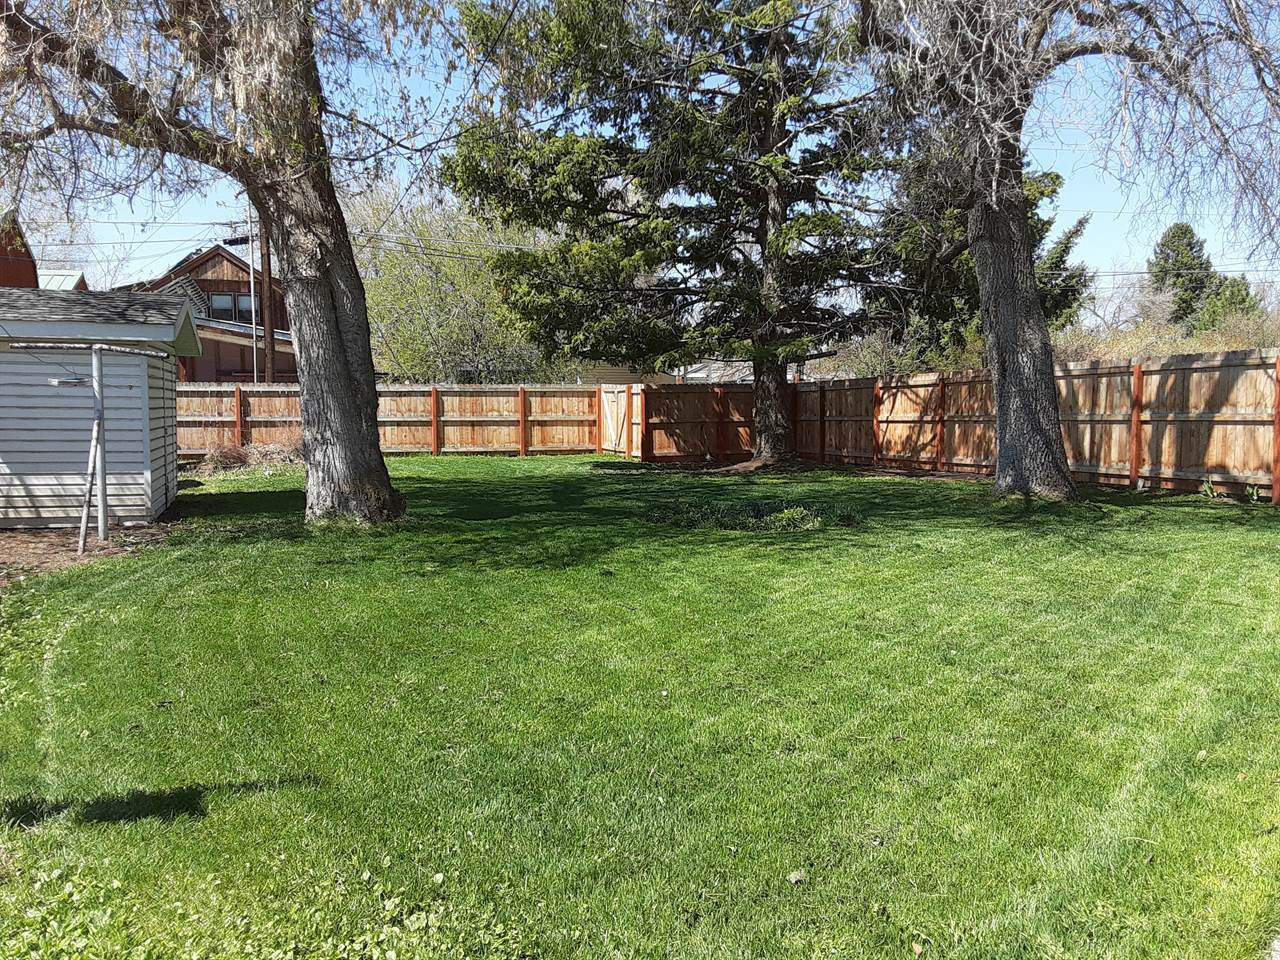 613 North Rouse Avenue, Bozeman, MT 59715